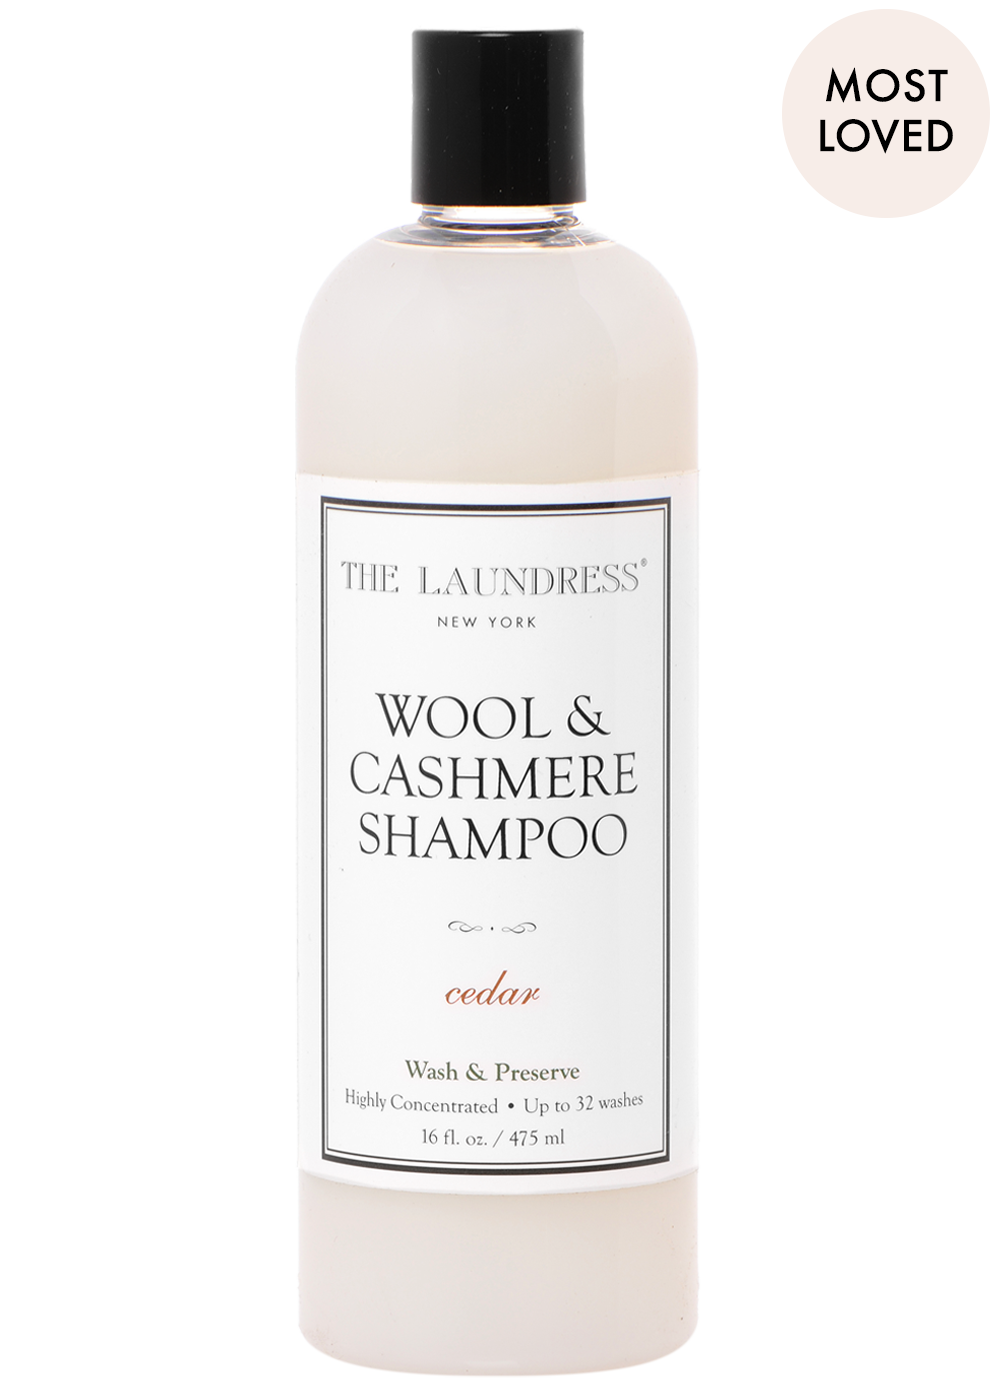 Wool & Cashmere Shampoo by the Laundress